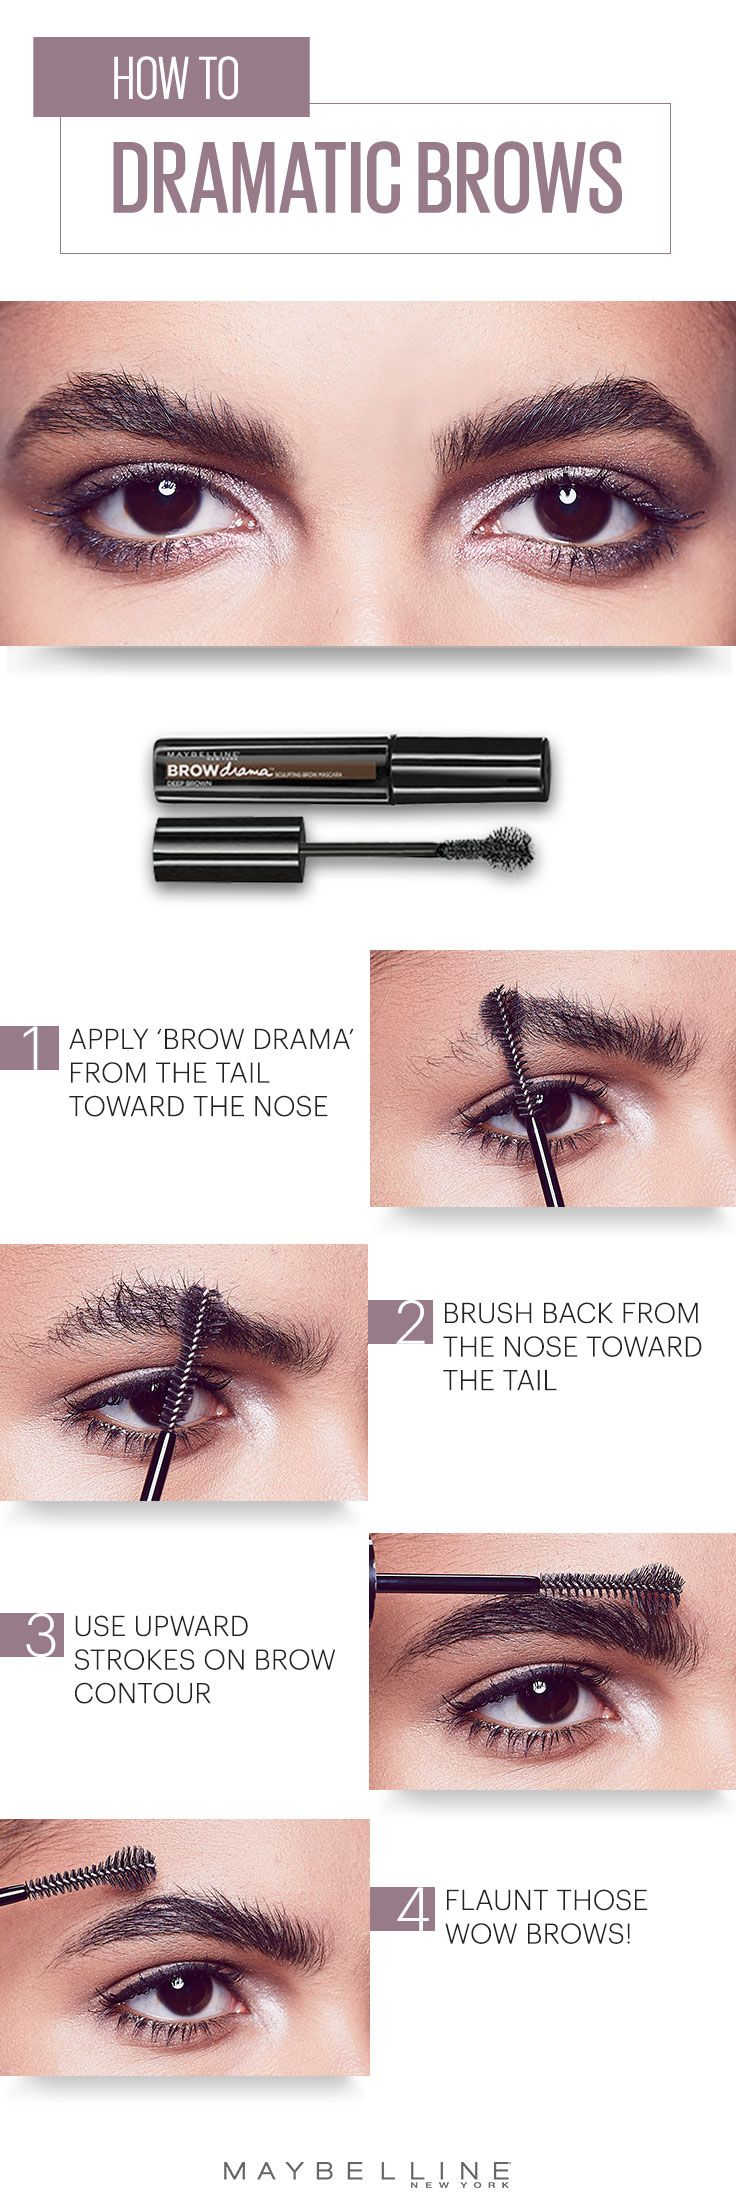 25+ best ideas about Full brows on Pinterest | Full eyebrows, Bold ...